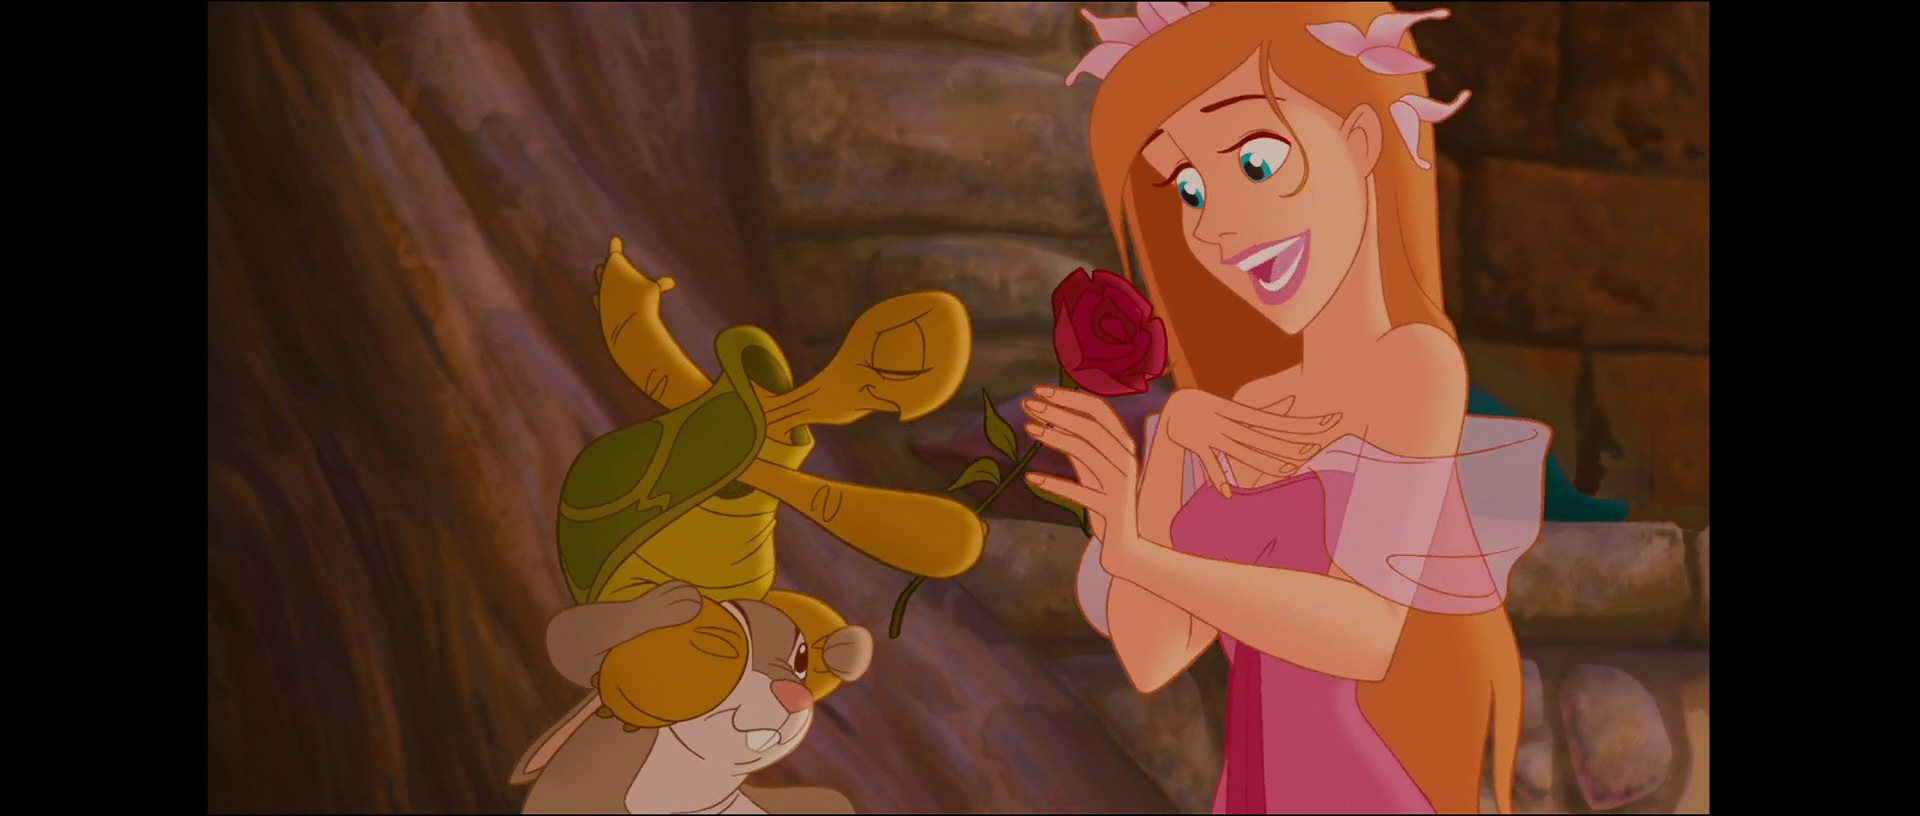 image enchanteddisneyscreencapscom333jpg disney